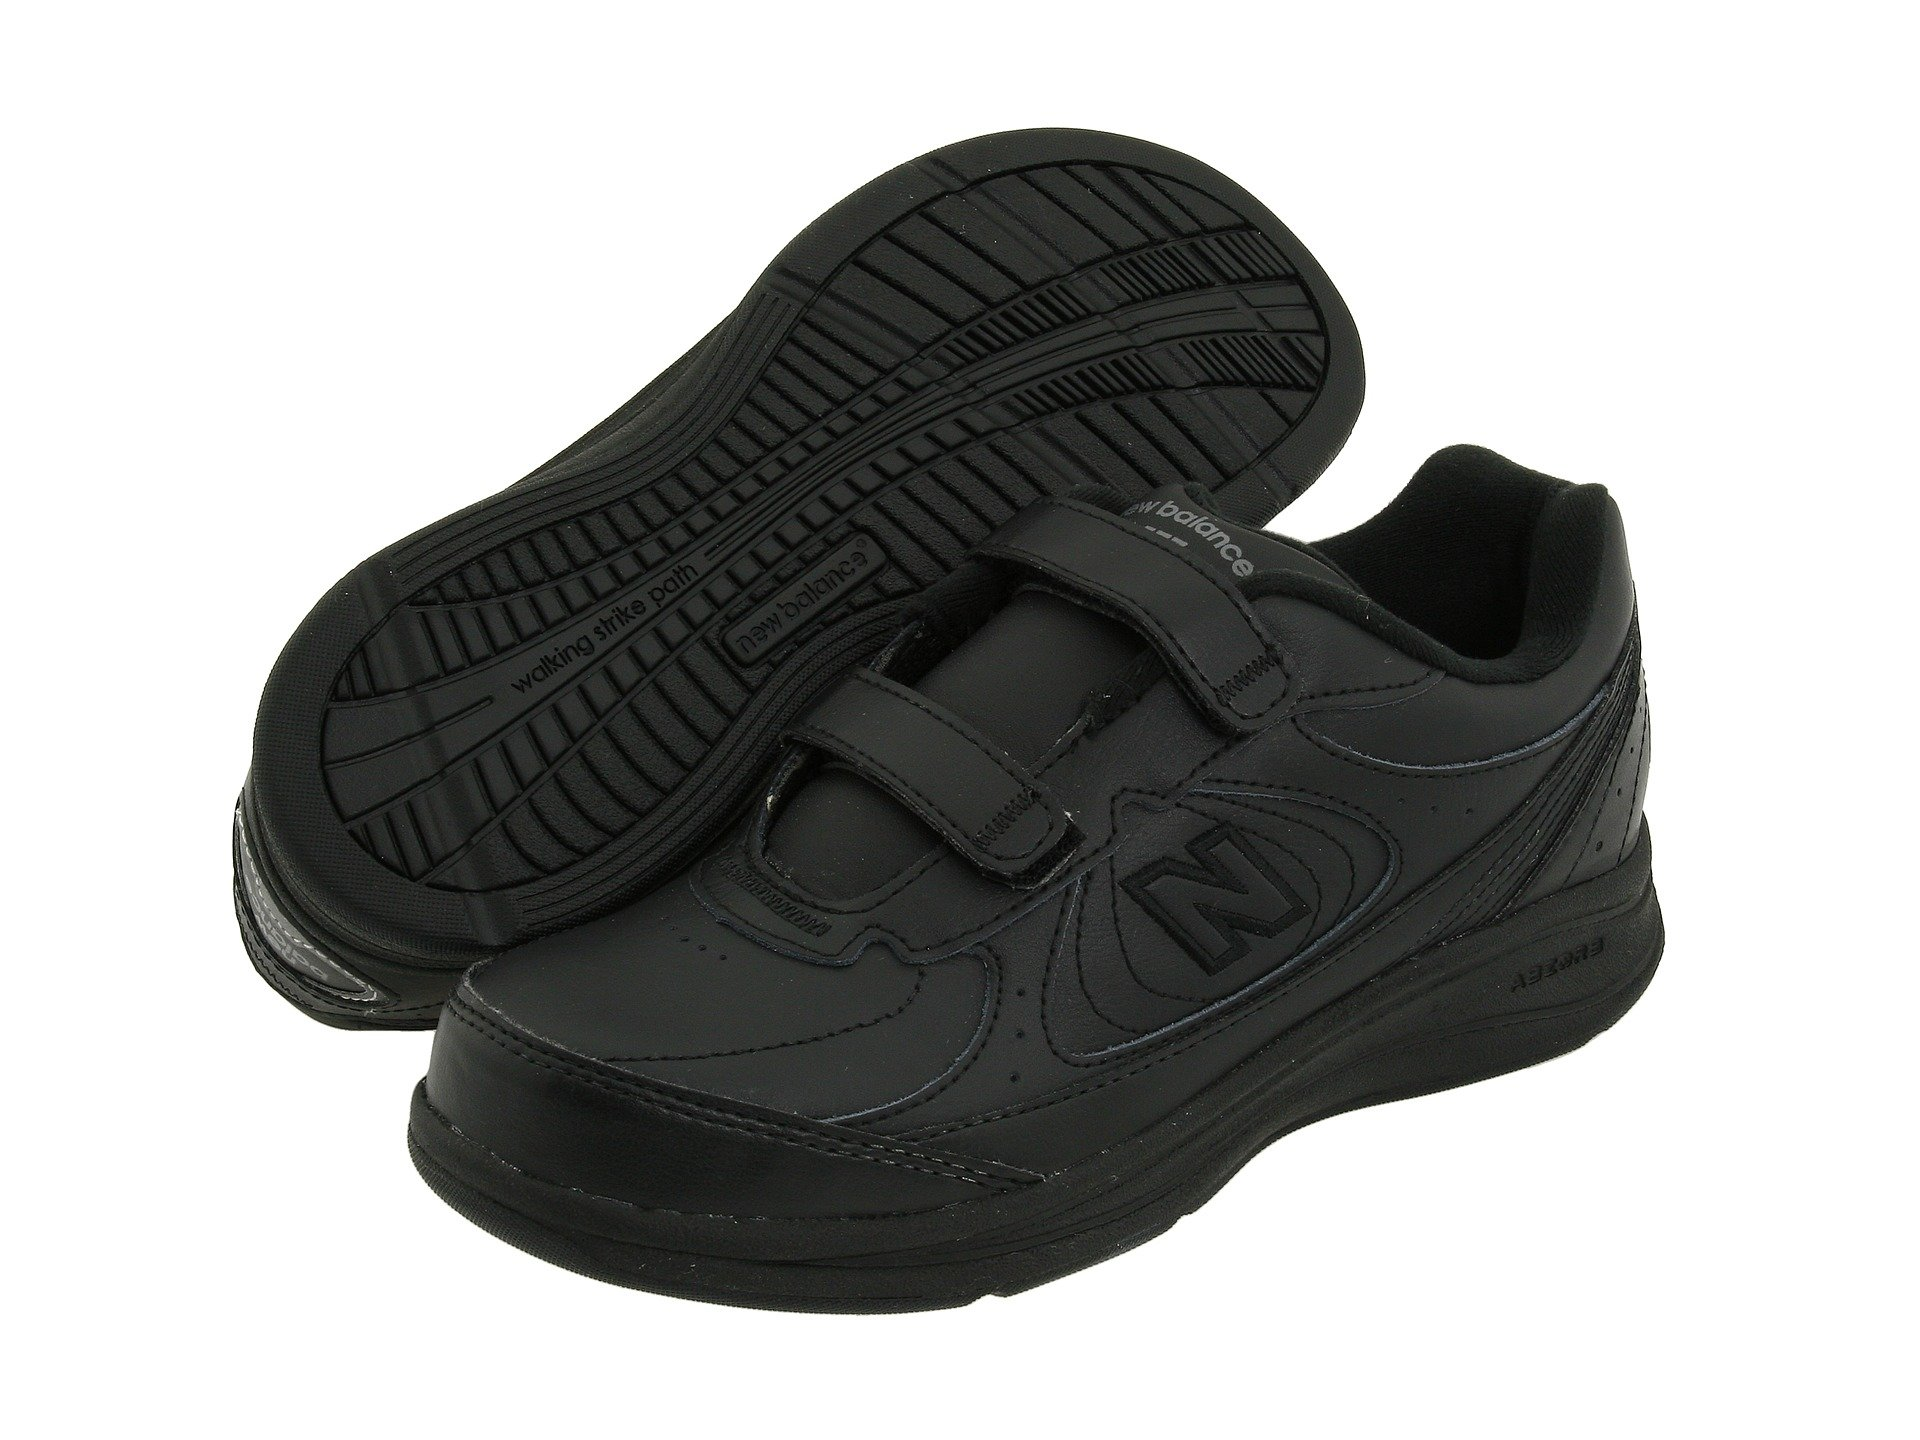 new balance diabetic shoes. pair new balance diabetic shoes